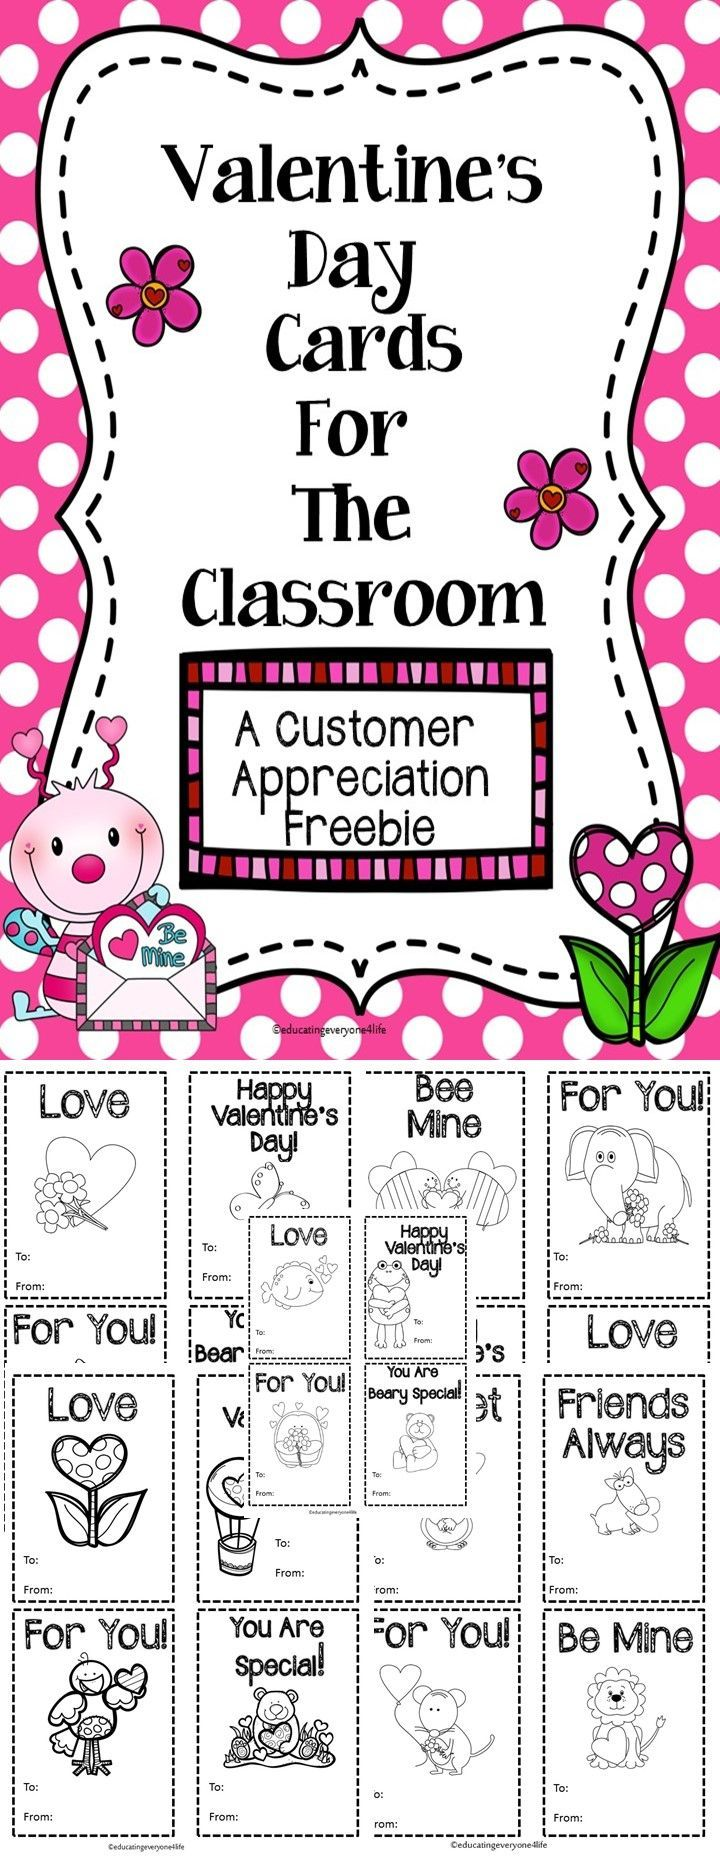 Free Valentines Day Cards For The Classroom A great customer